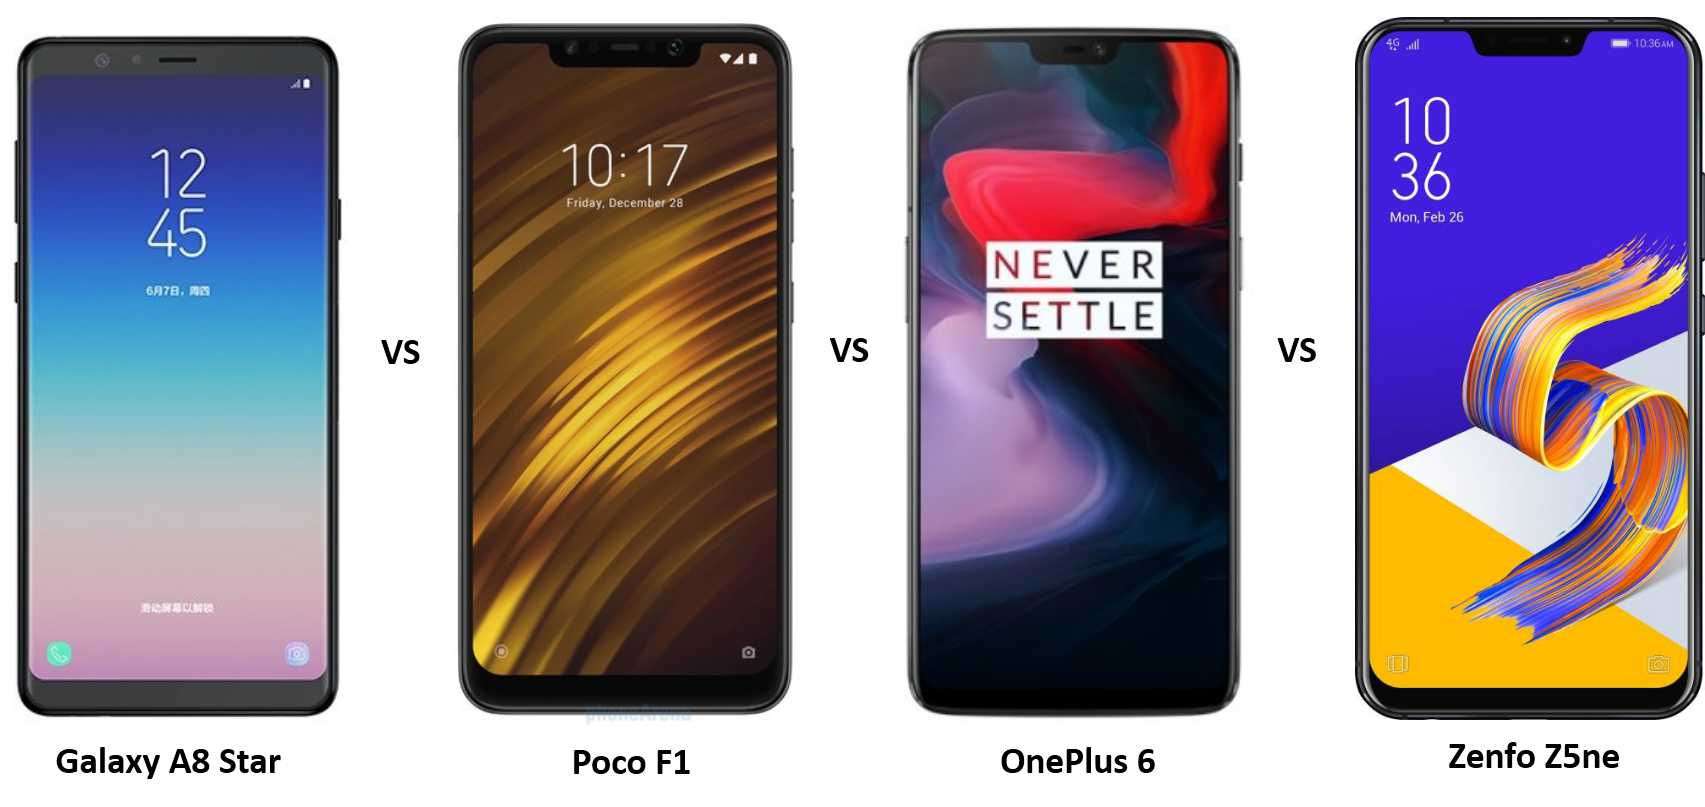 Galaxy A8 Star vs Poco F1 vs OnePlus 6 vs Asus Zenfone 5Z: Find Out Which One is Better